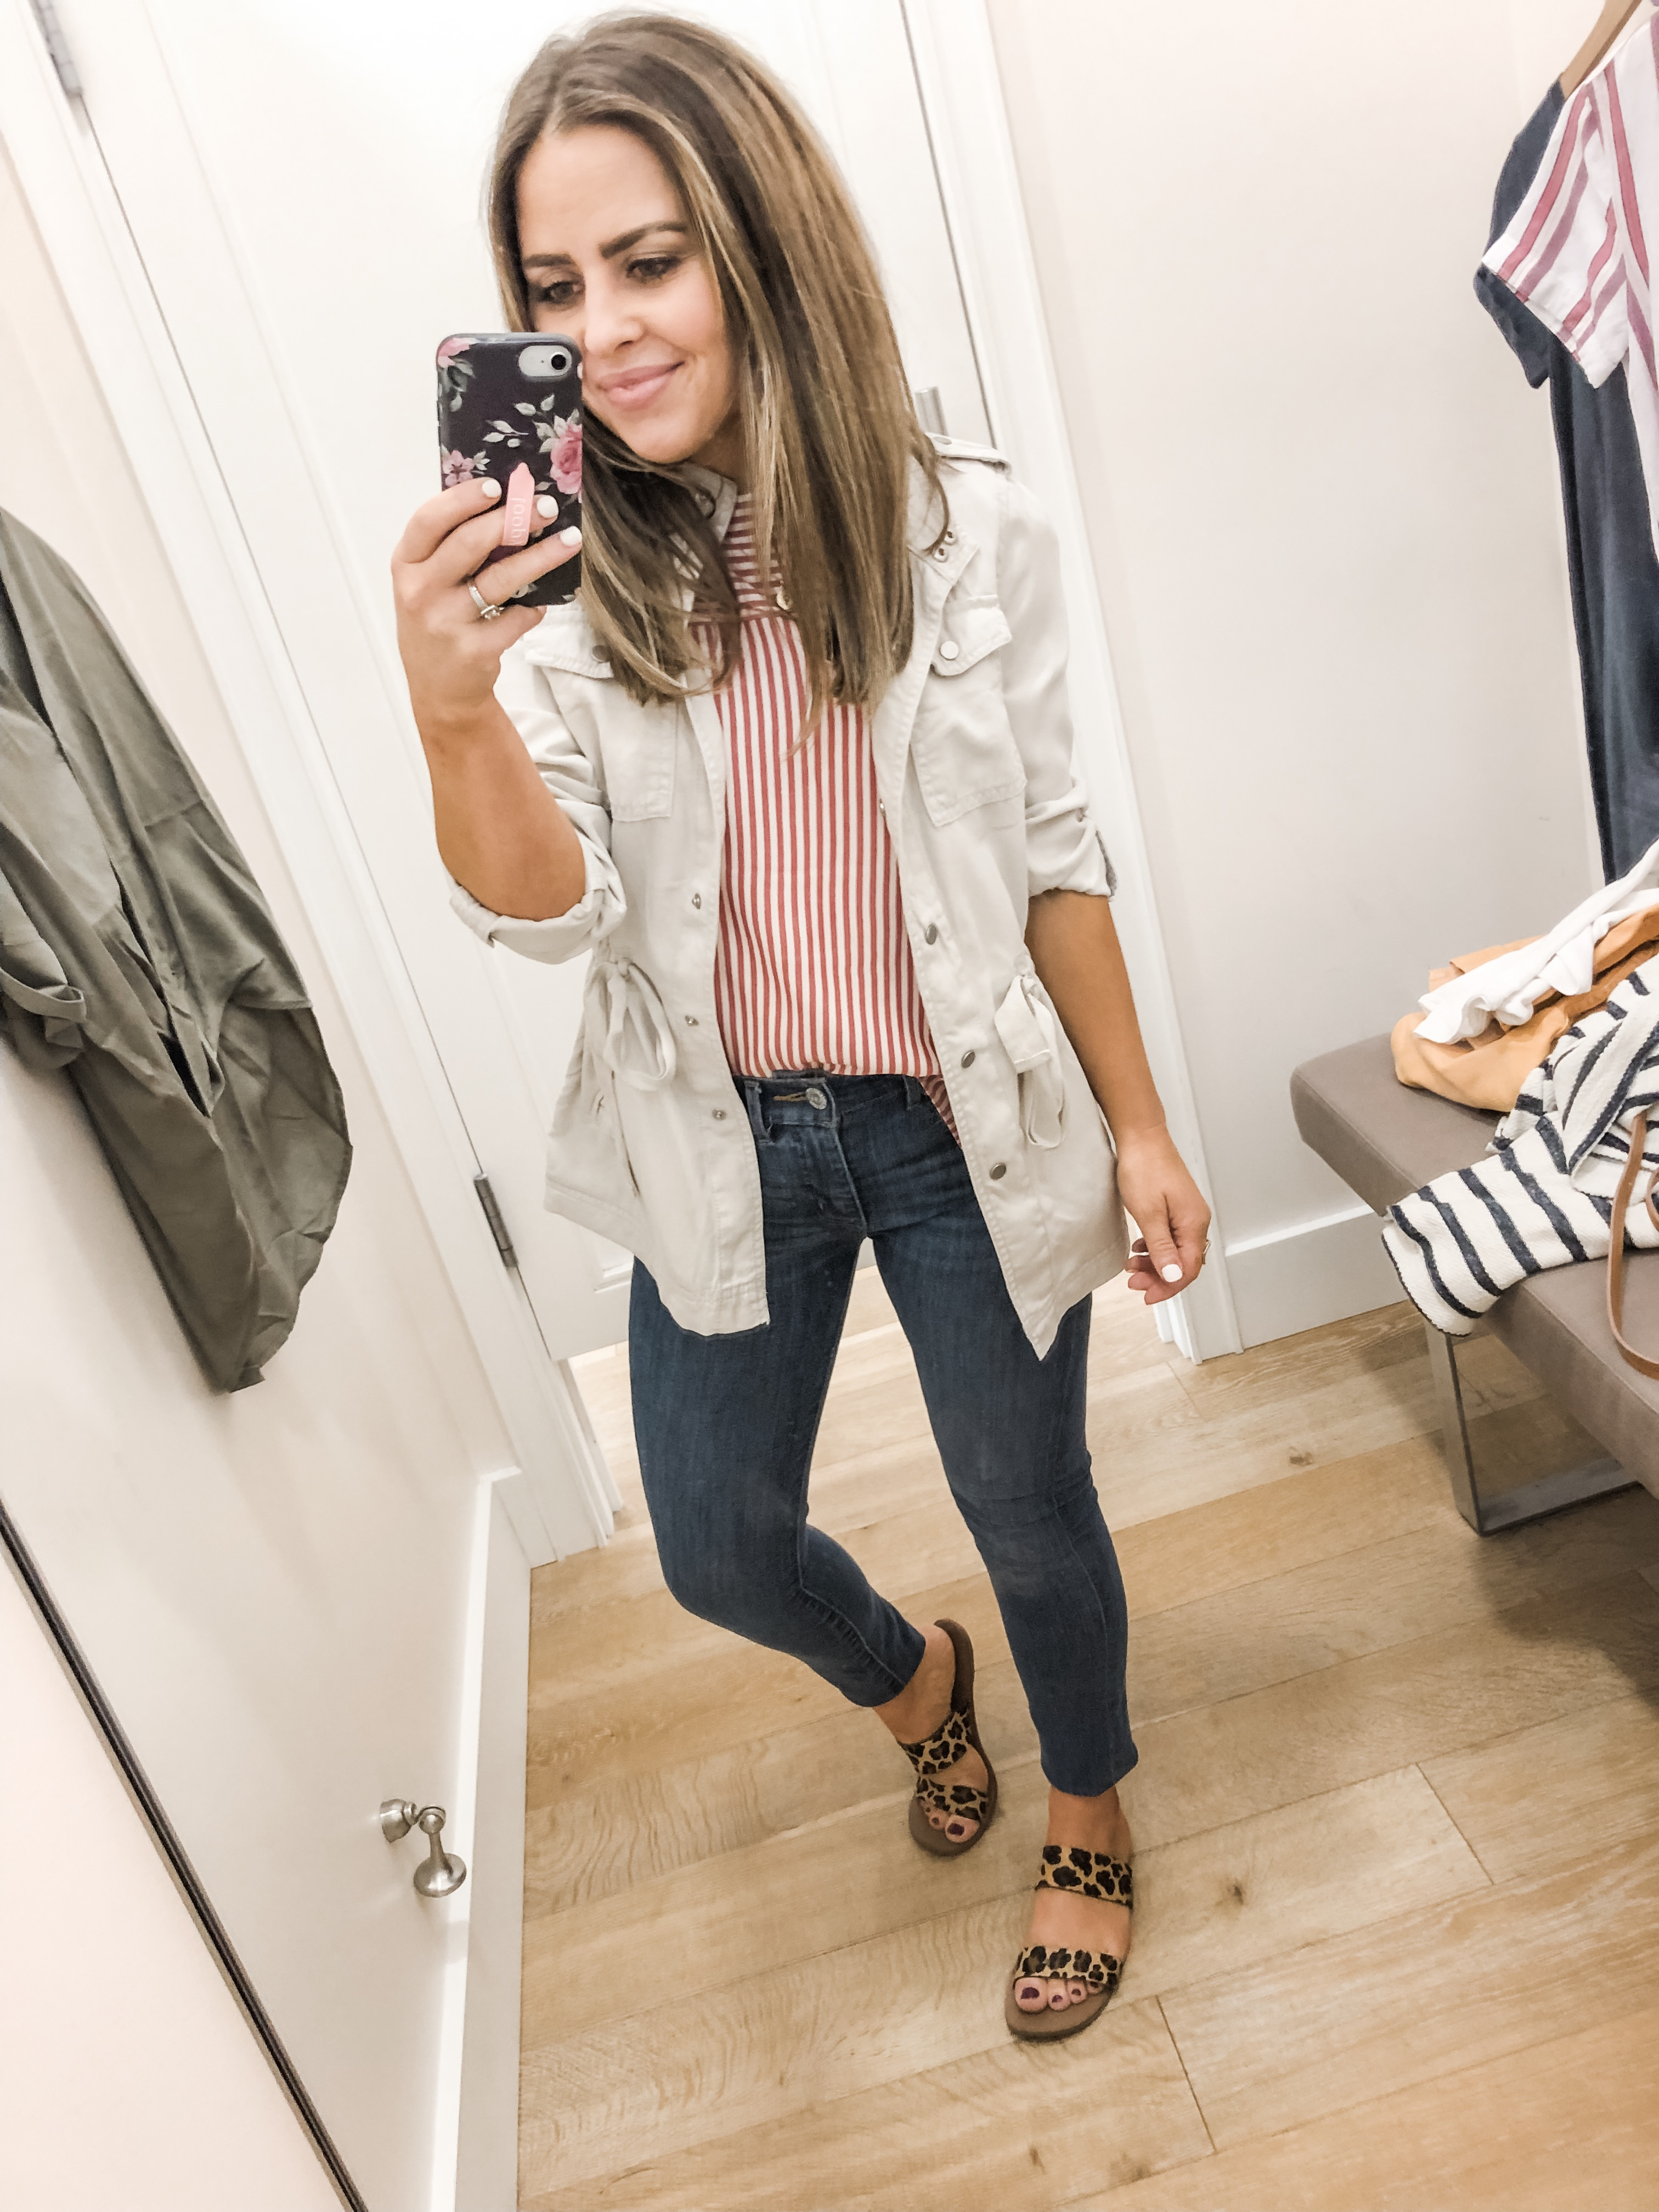 230aeb44d09d red and white striped top. skinny jeans. white jacket. leopard shoes.